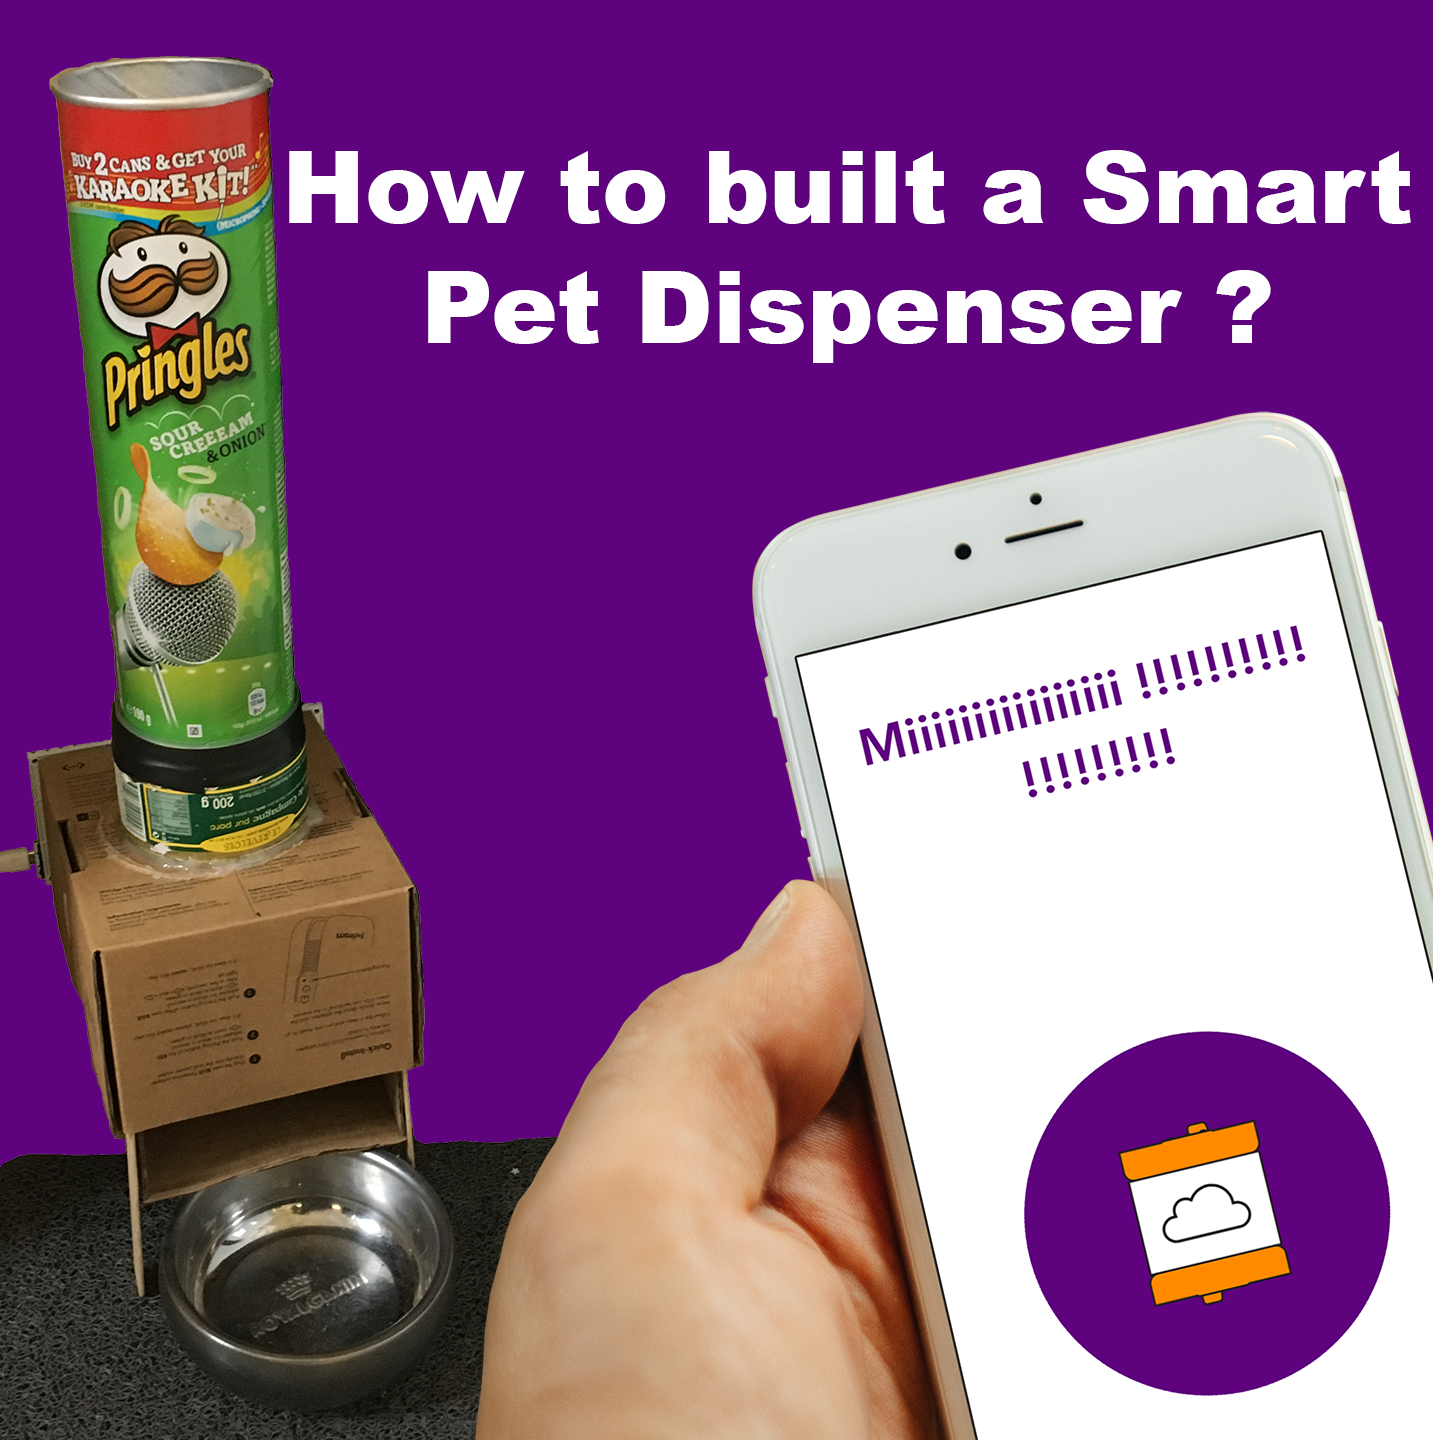 DIY-How to built a smart pet dispenser